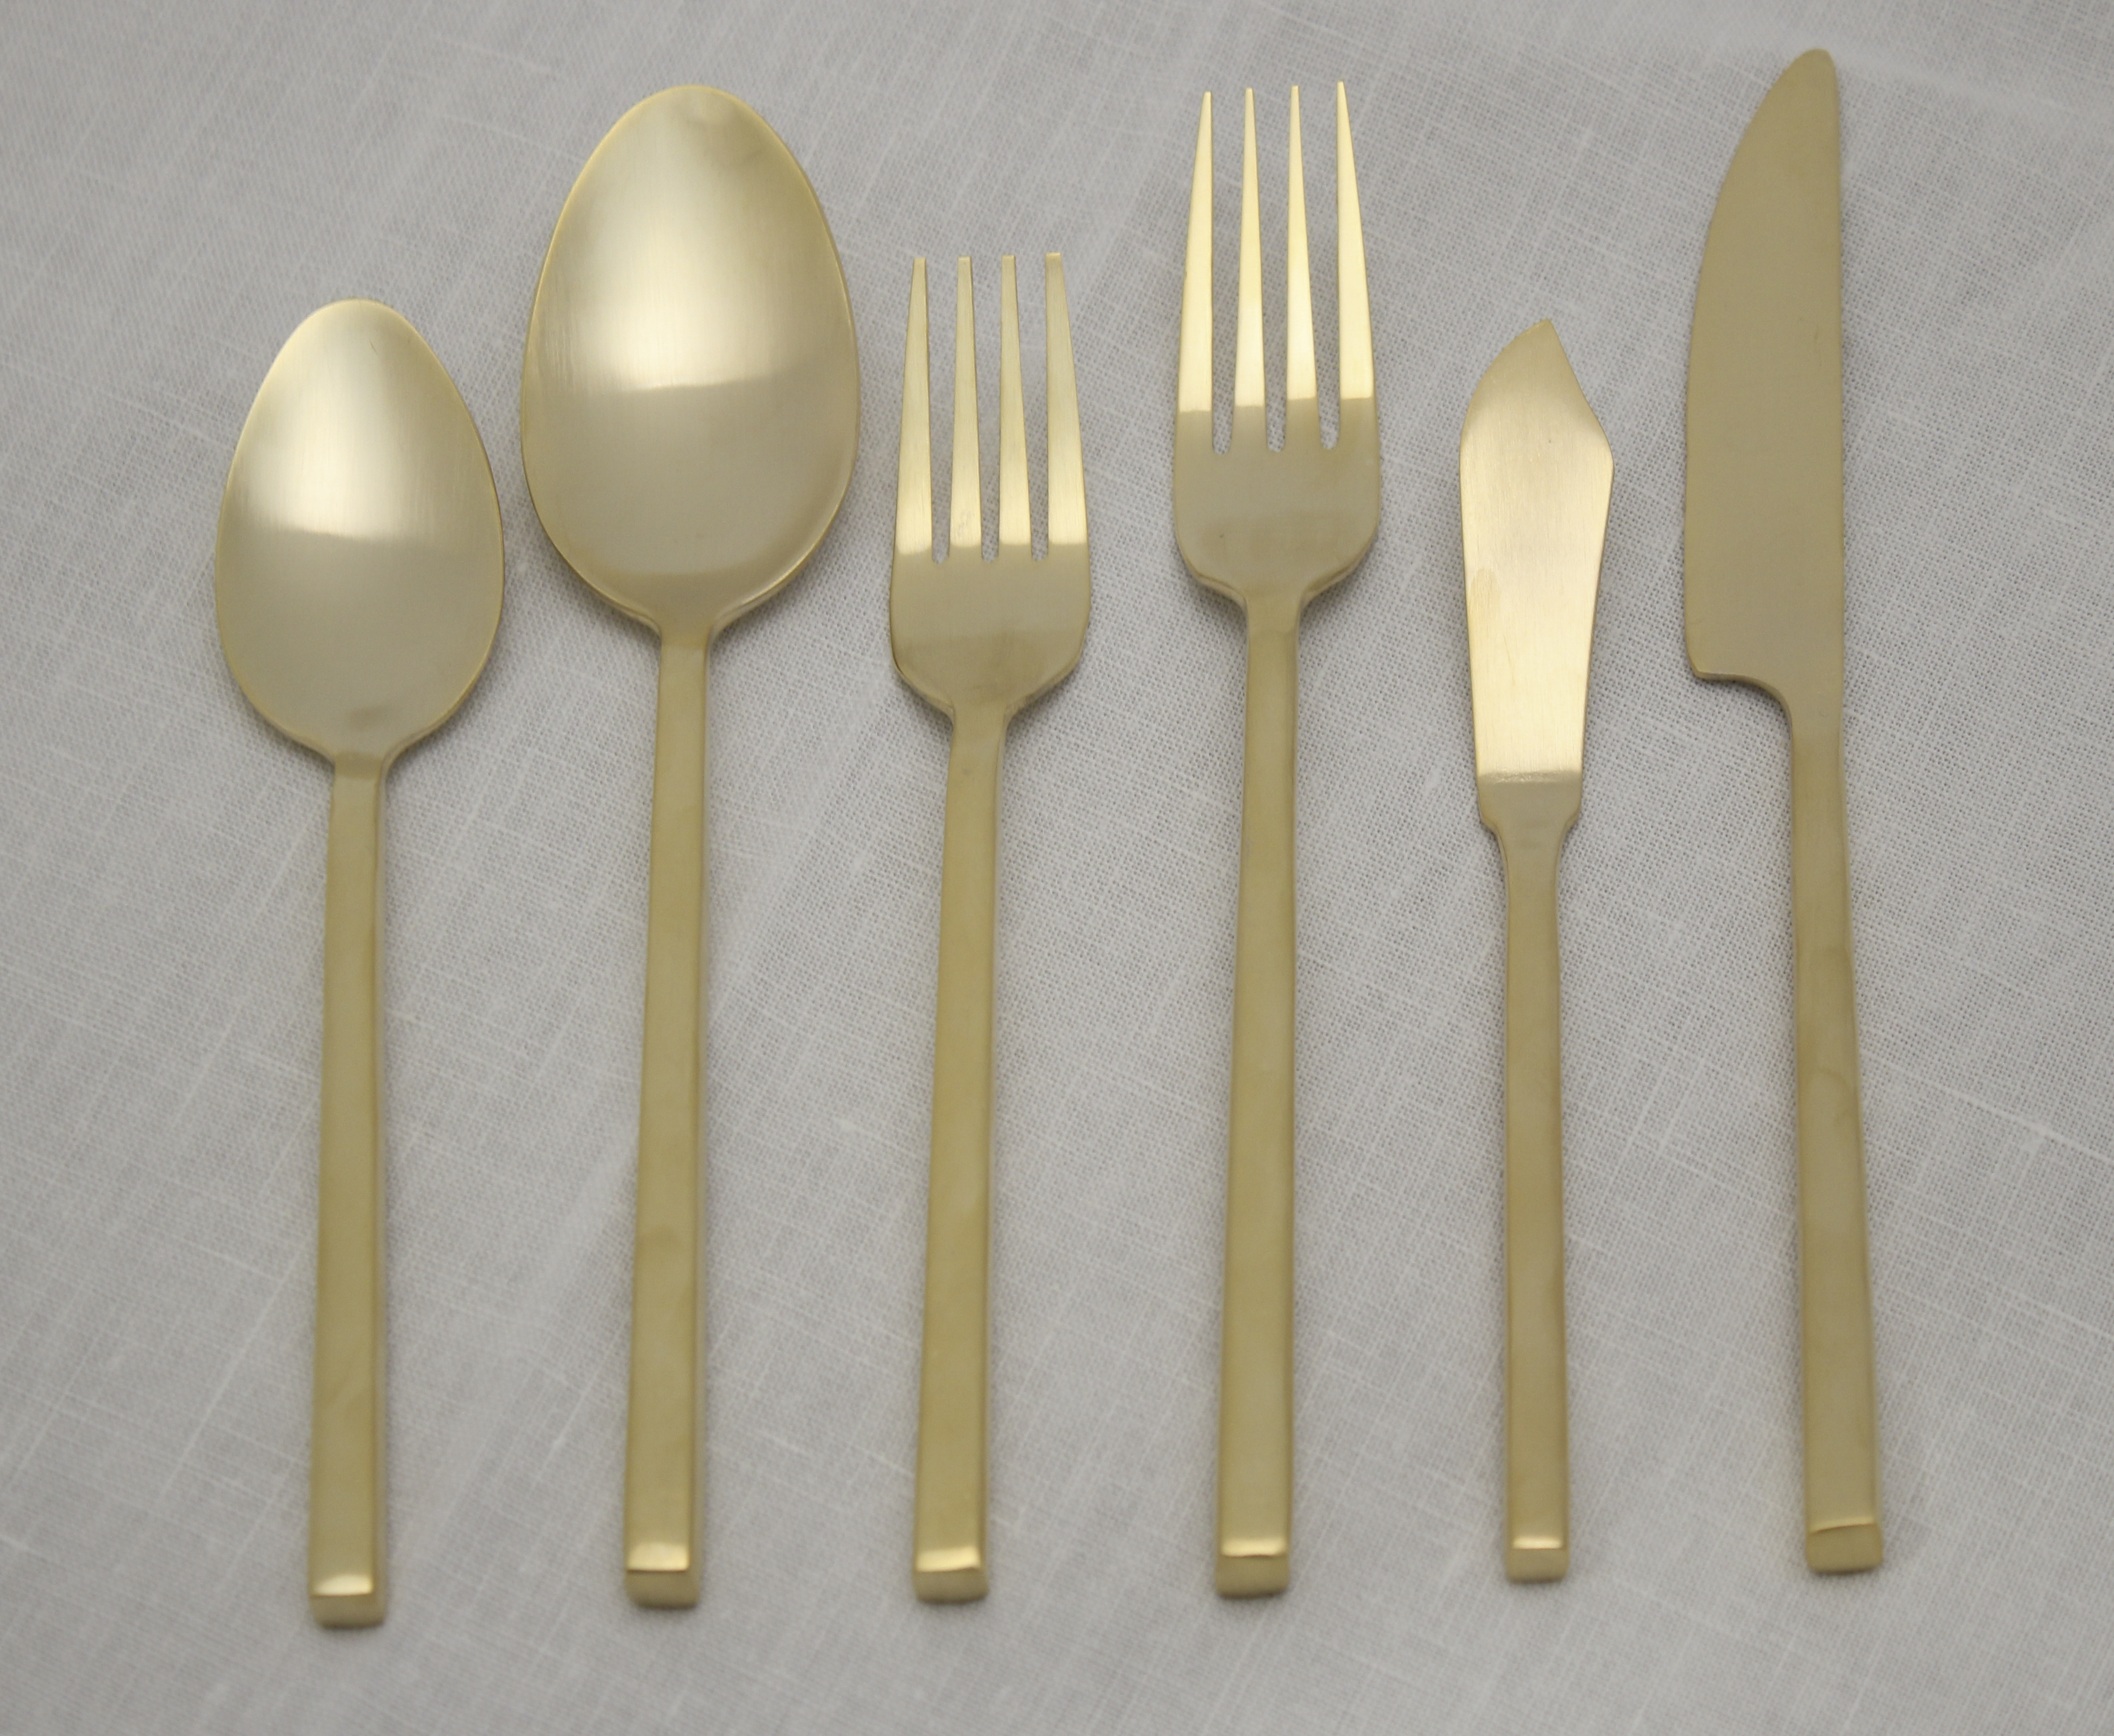 Elegant Flatware Sets Unique Flatware Set Elegant Unique Flatware Unique